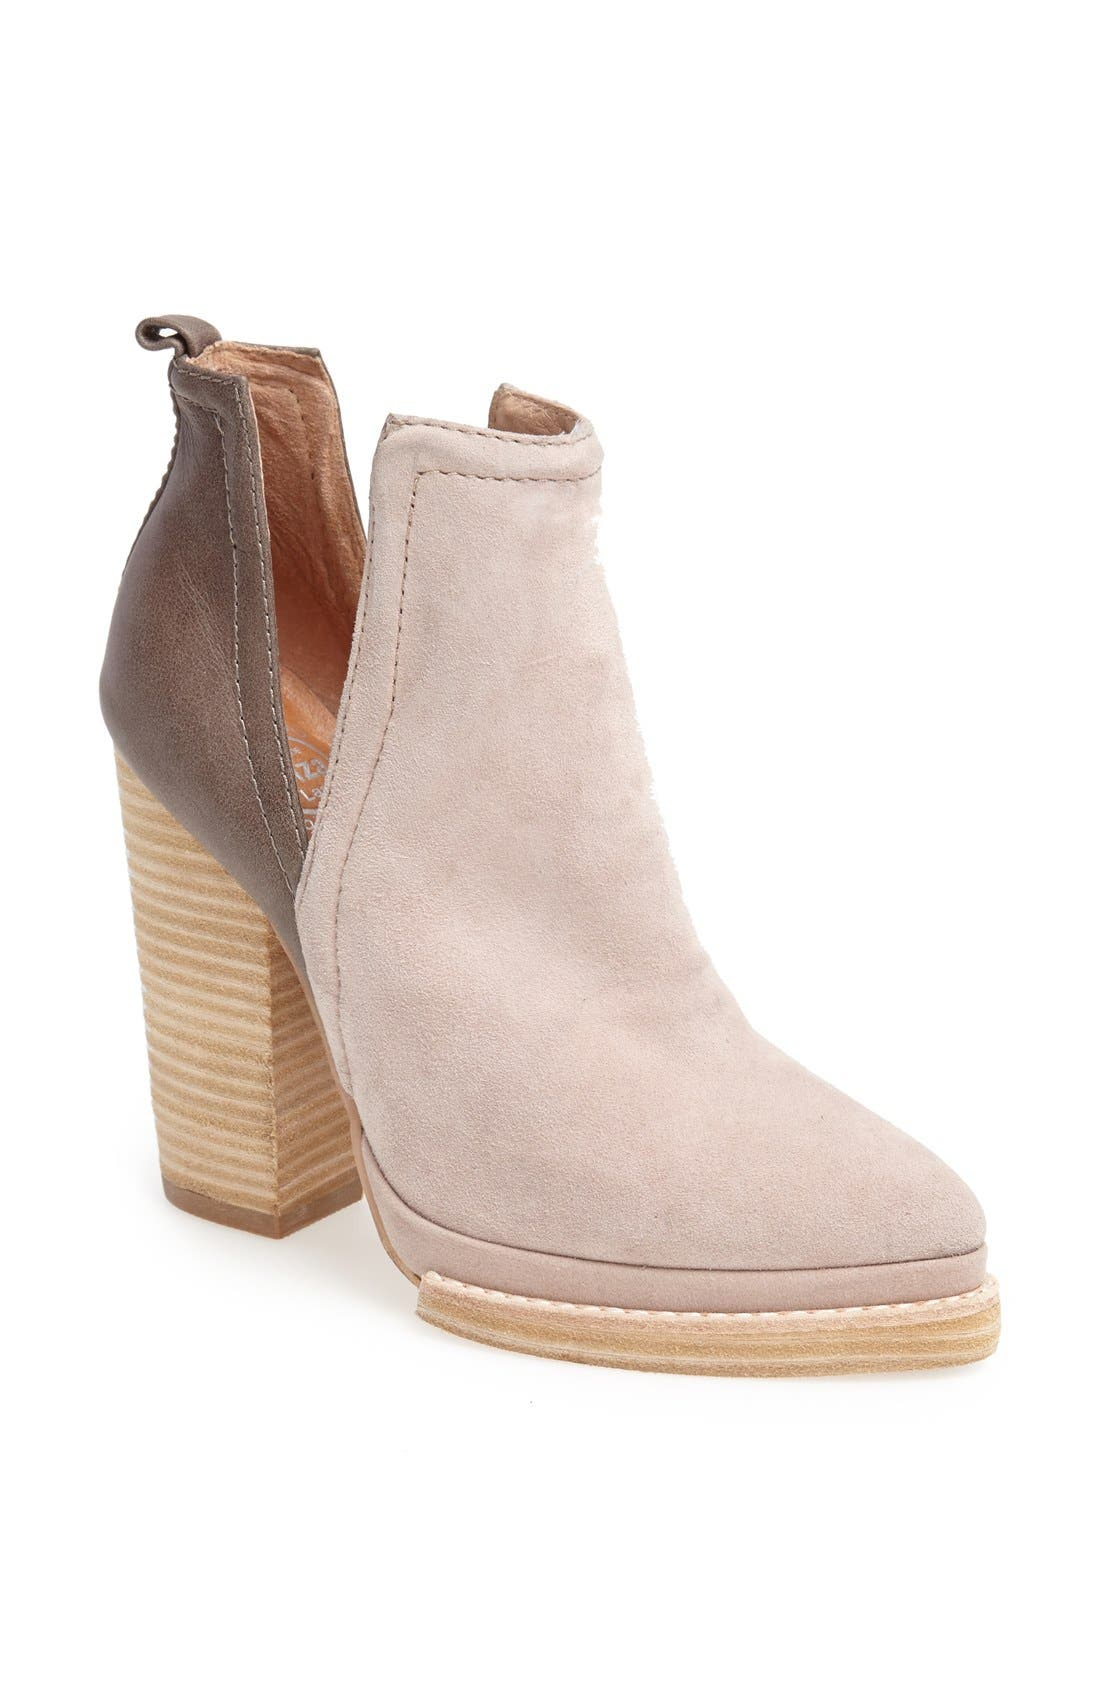 Alternate Image 1 Selected - Jeffrey Campbell 'Who's Next' Leather Bootie